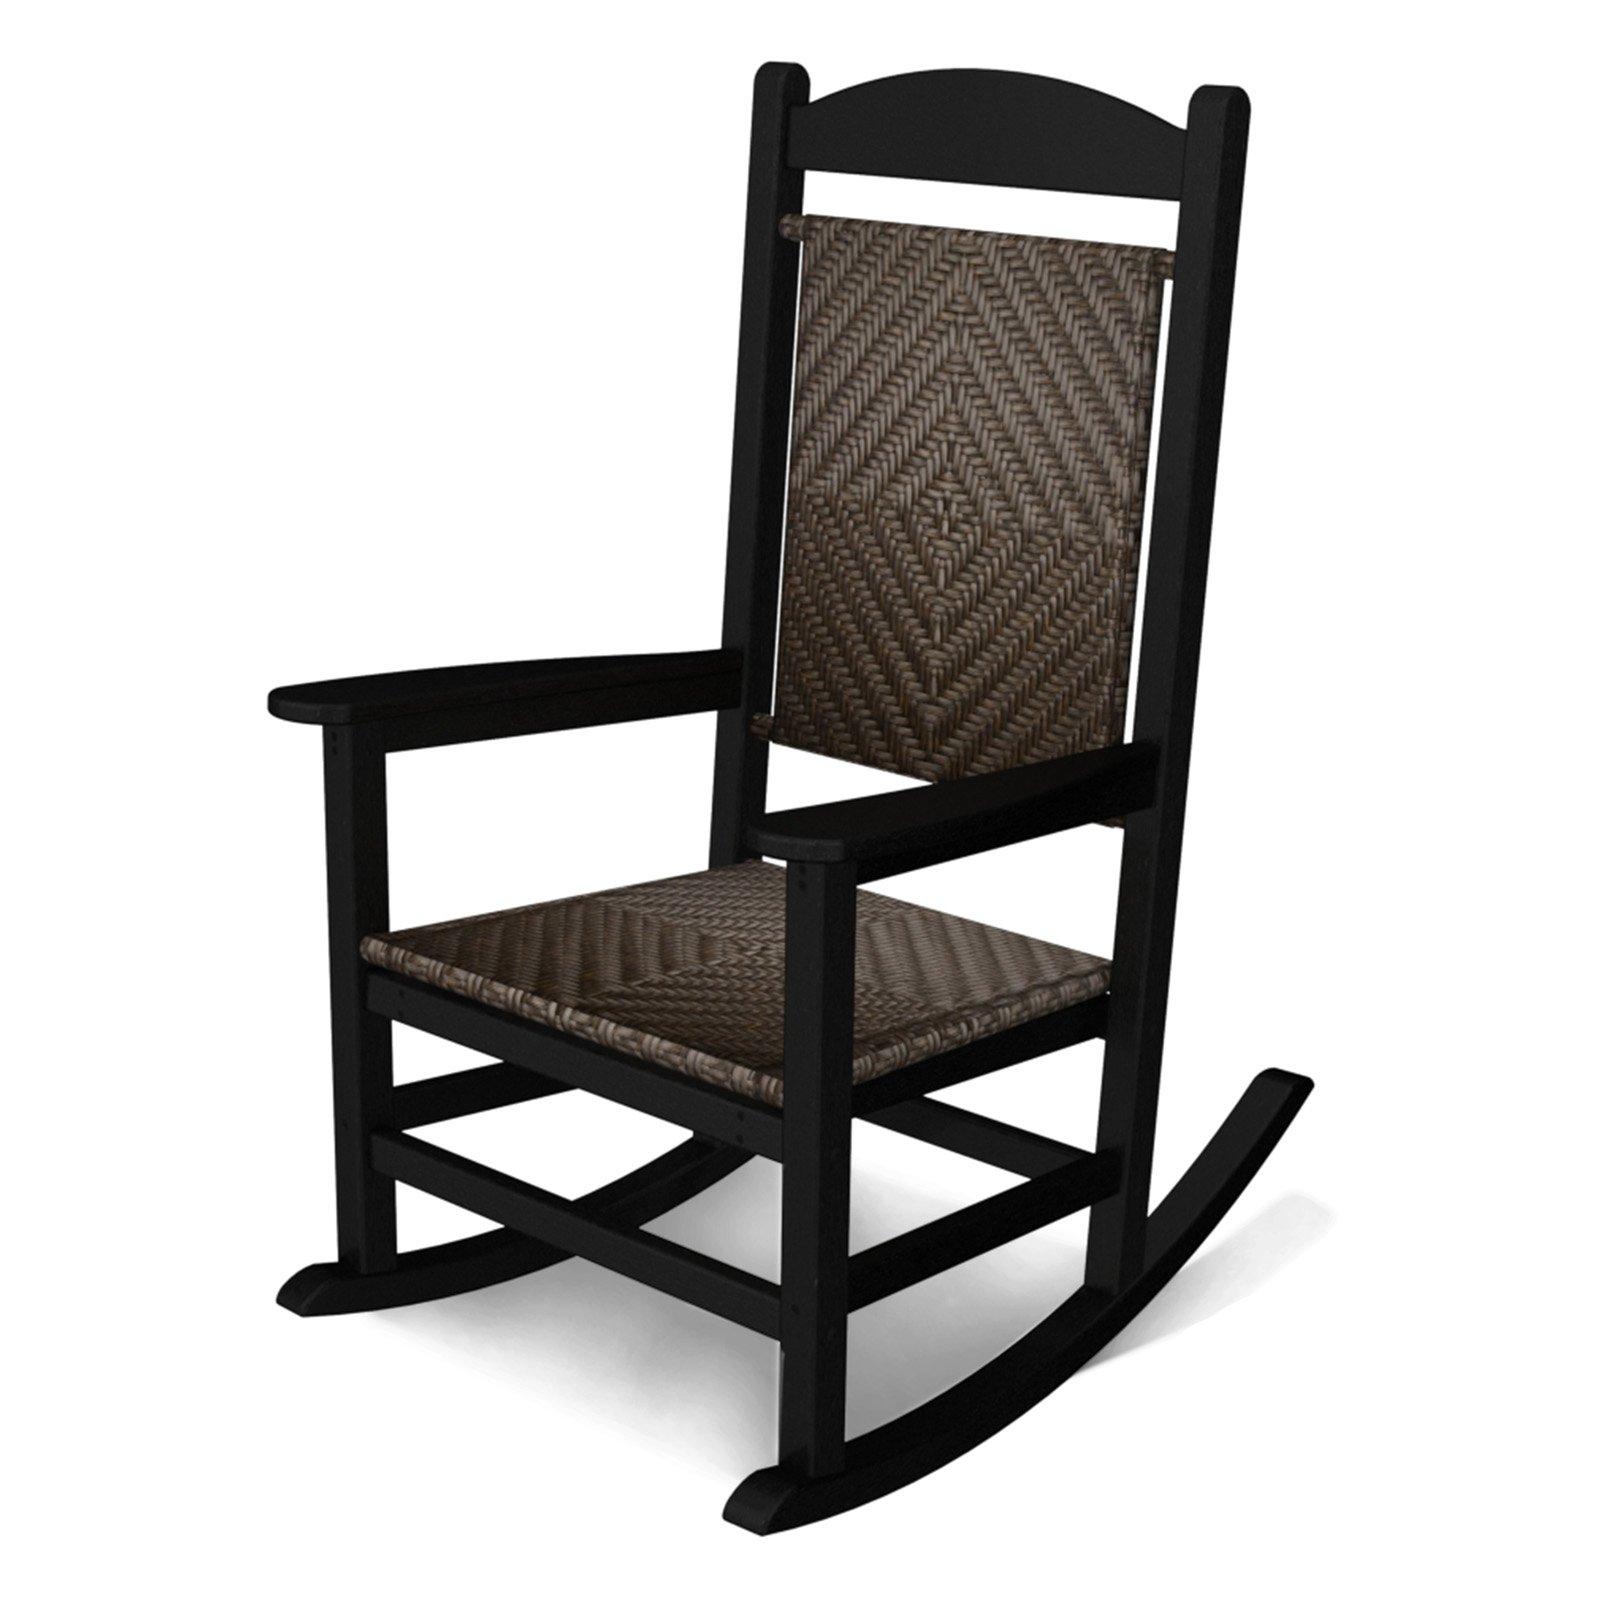 POLYWOOD® Presidential Recycled Plastic Woven Rocker